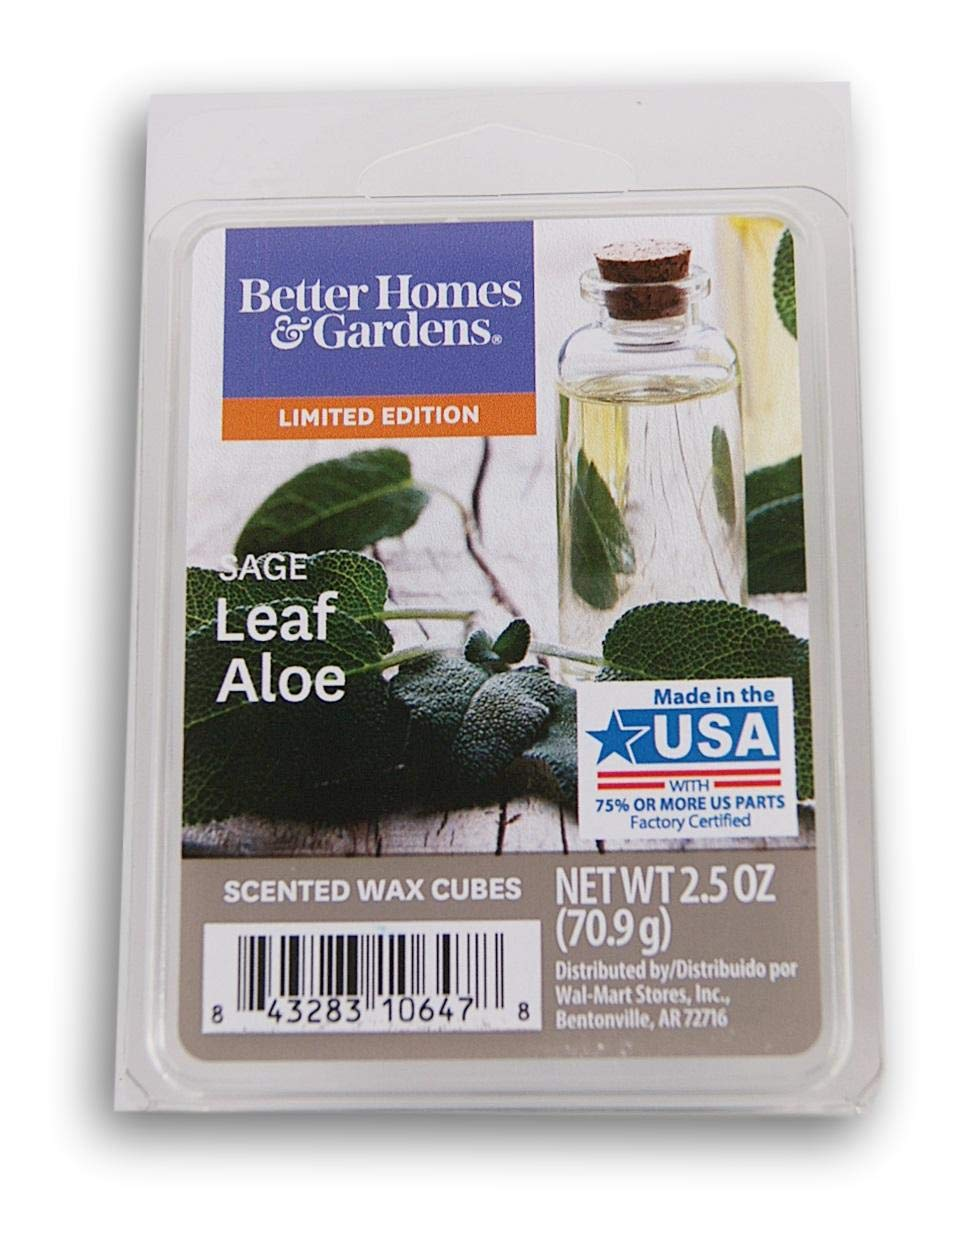 Better Homes /& Gardens Sage Leaf Aloe 2019 Edition Wax Cubes Better Homes and Gardens